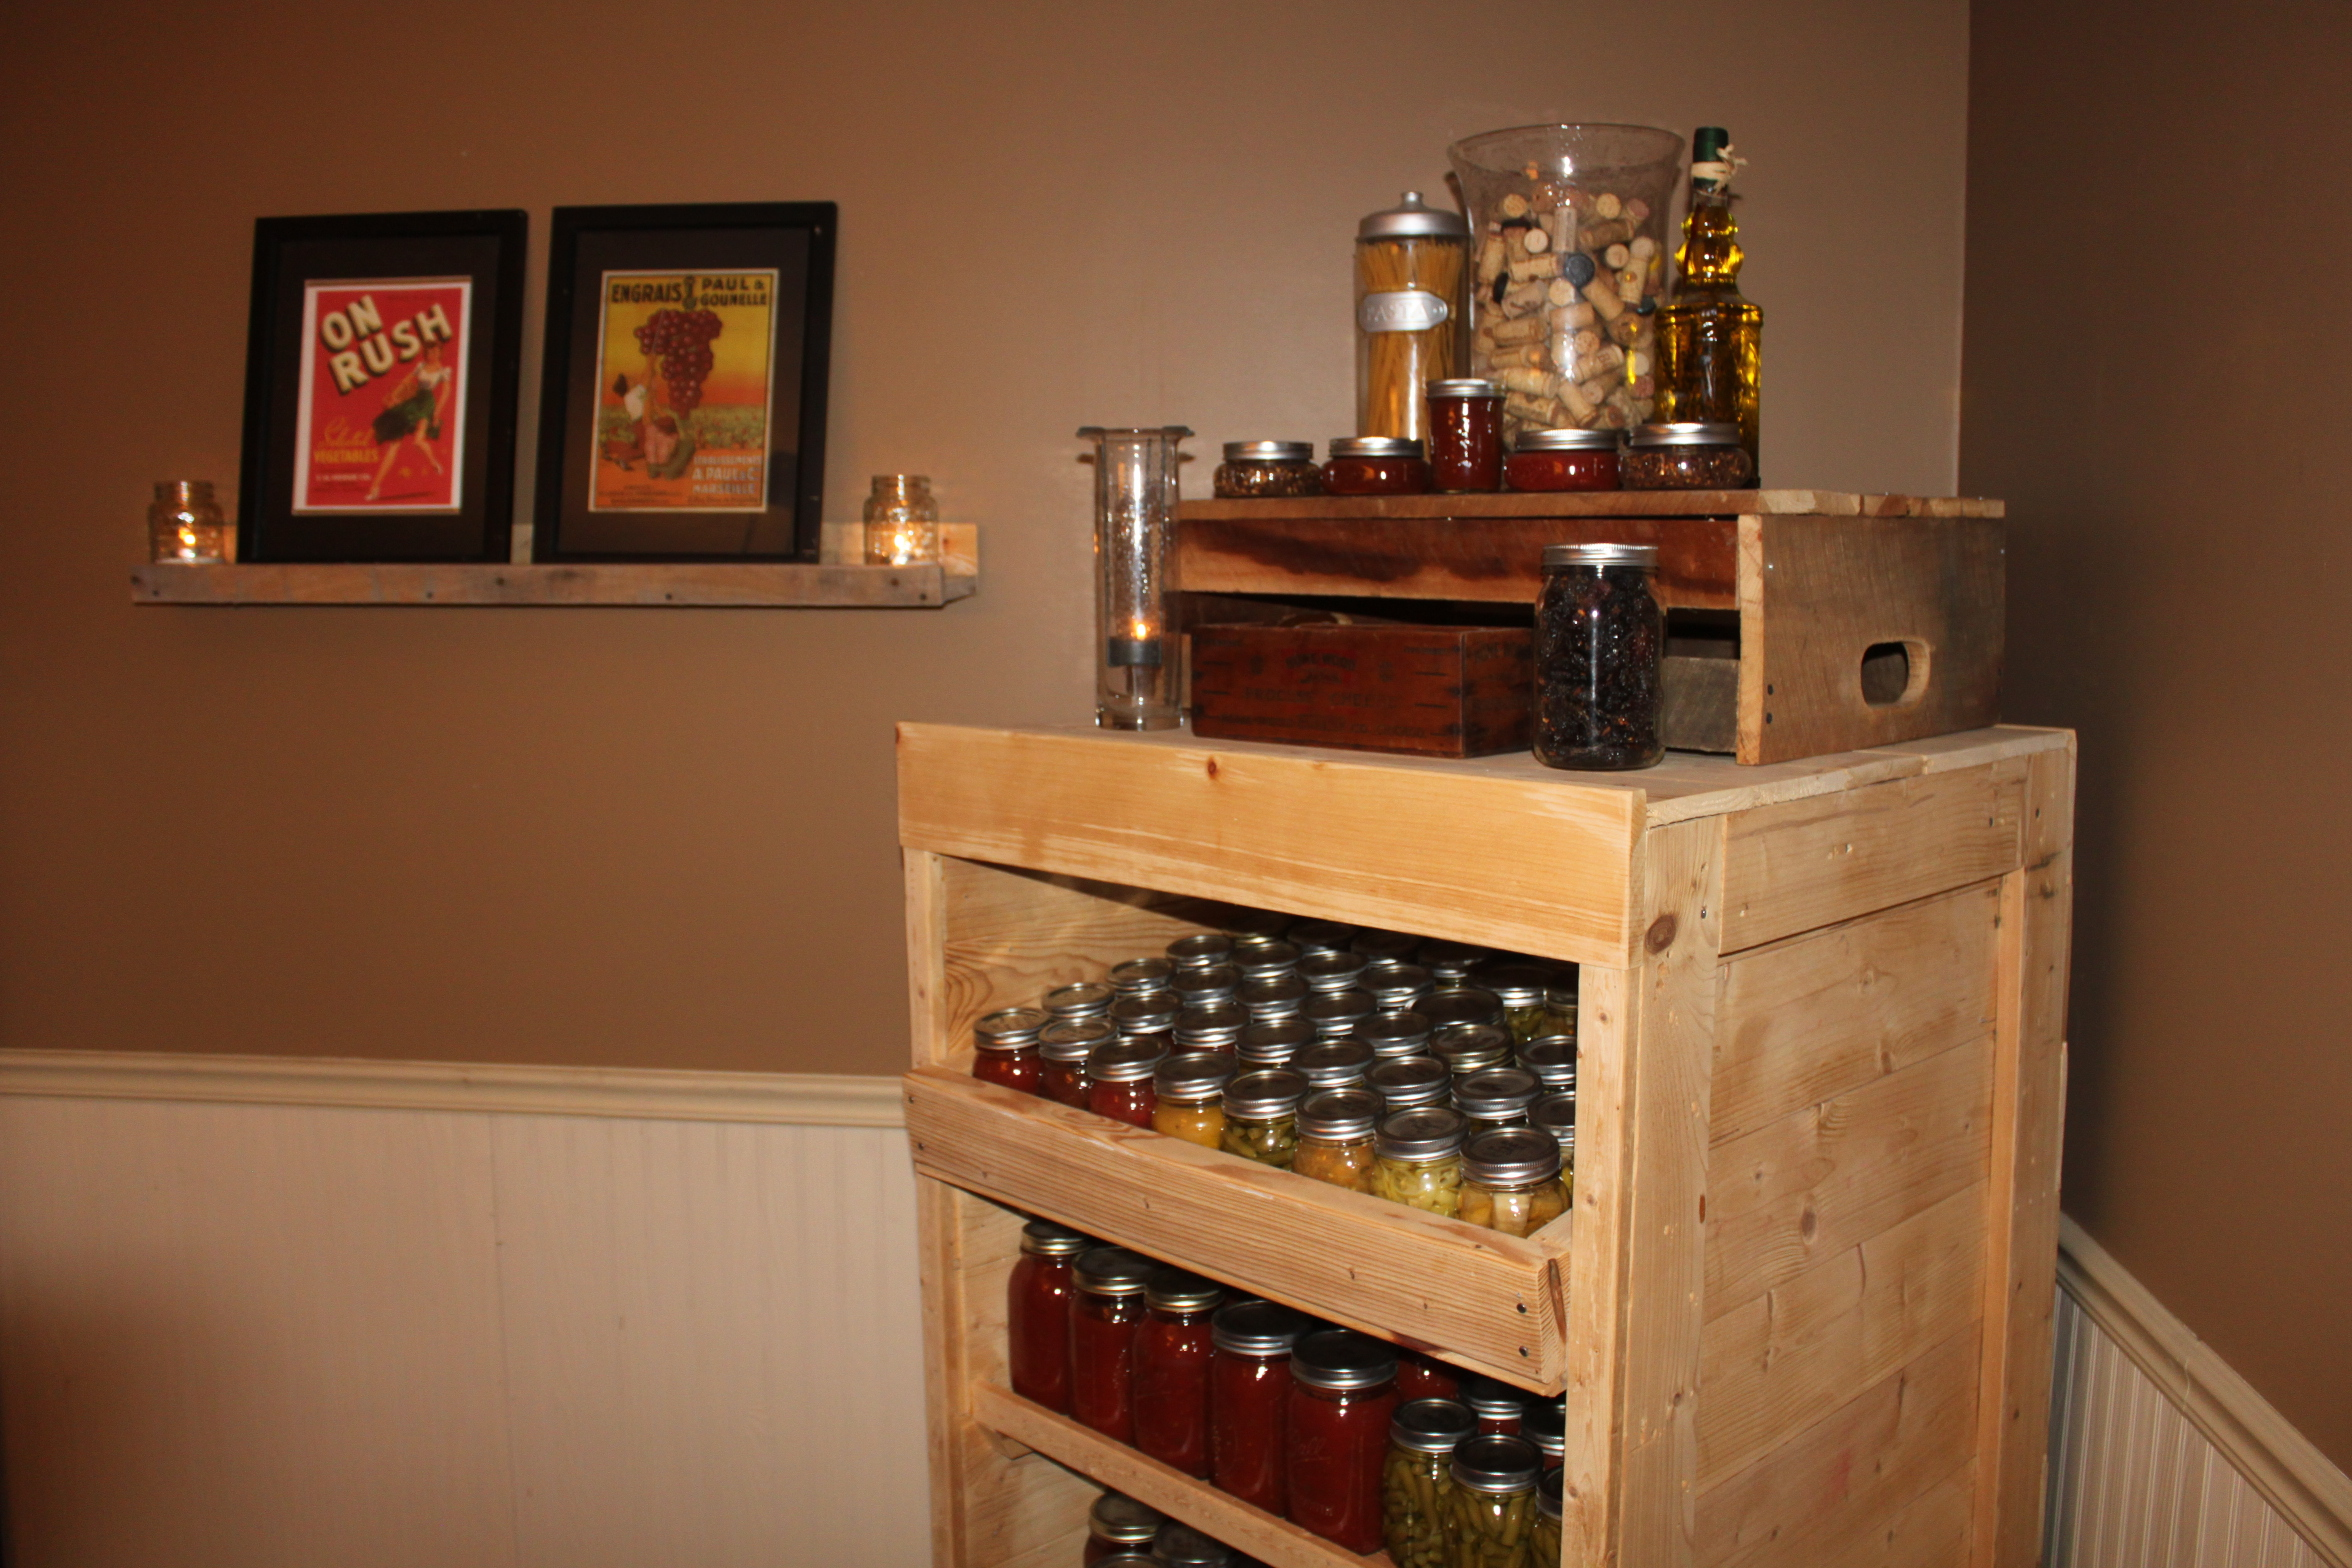 Cupboards Made From Pallets Using Pallets To Build A Canning Pantry Cupboard An Inexpensive